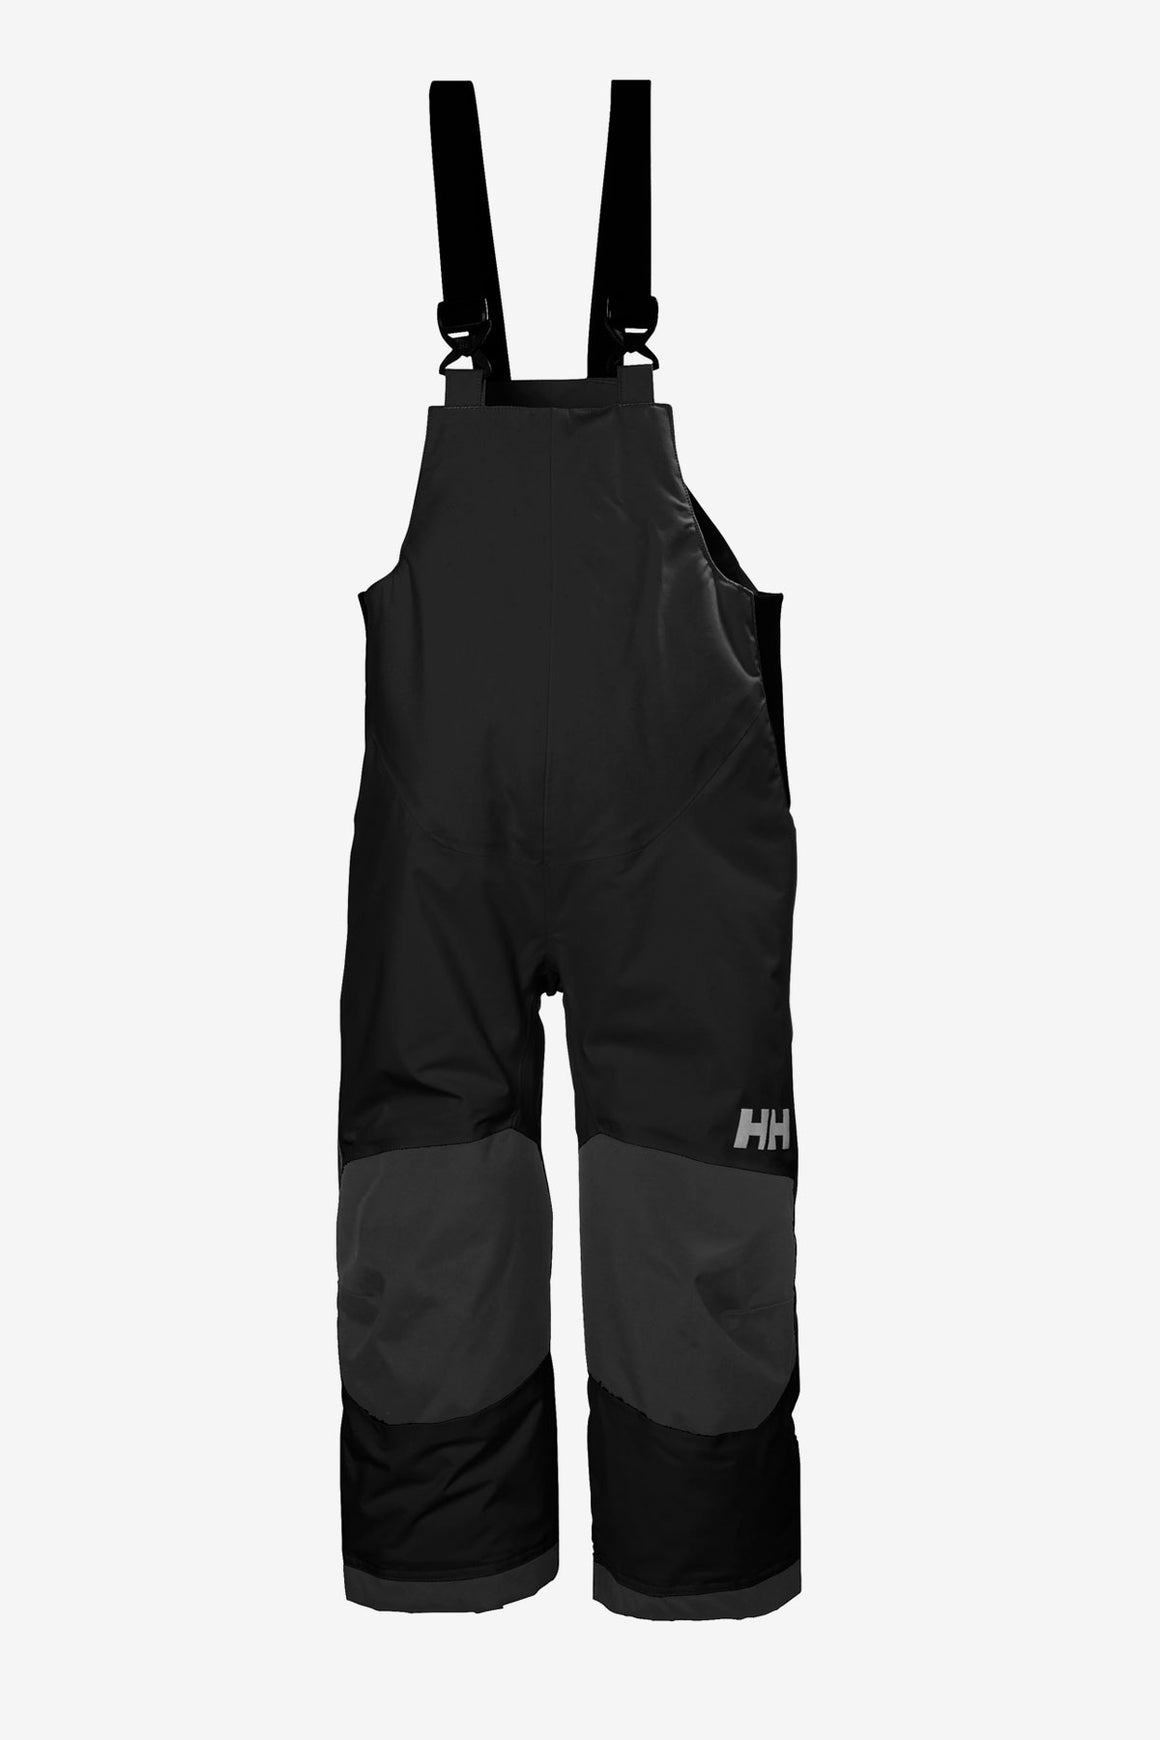 Helly Hansen Rider Bib Snowpants - Black